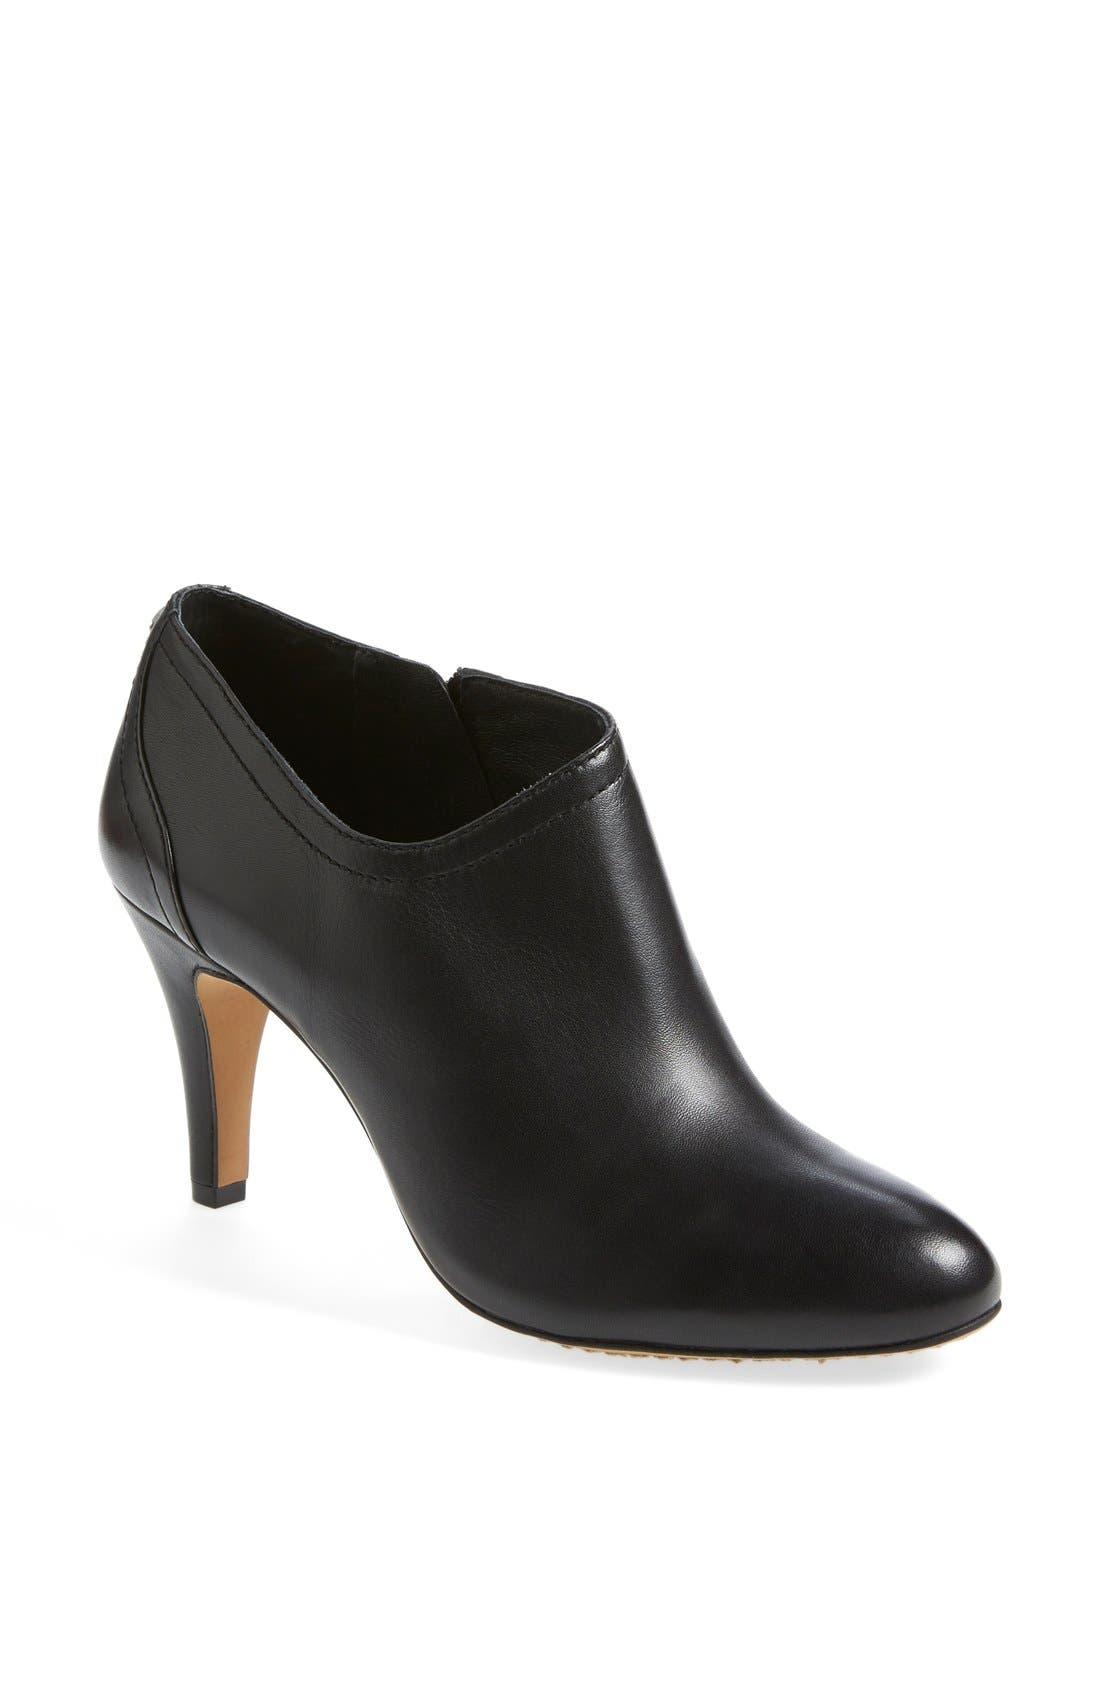 Main Image - Vince Camuto 'Vala' Bootie (Nordstrom Exclusive) (Women)